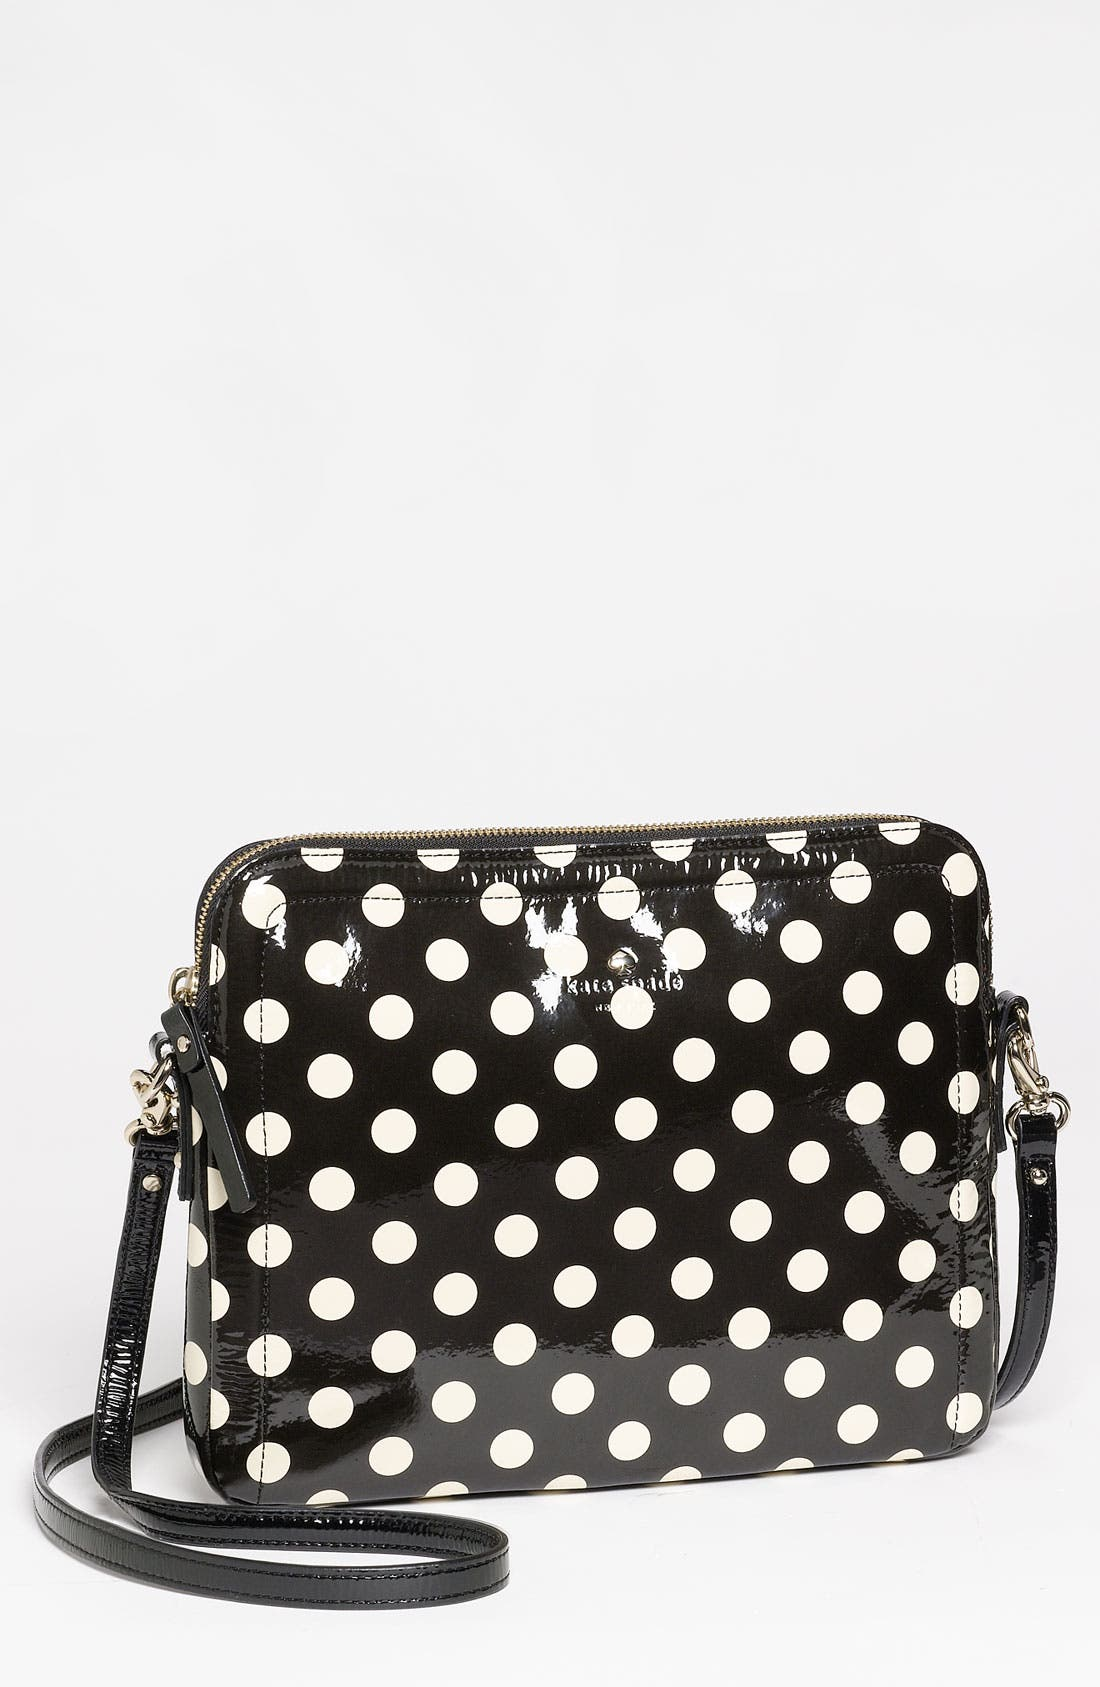 Main Image - kate spade new york 'carlisle street - bryce' iPad crossbody bag